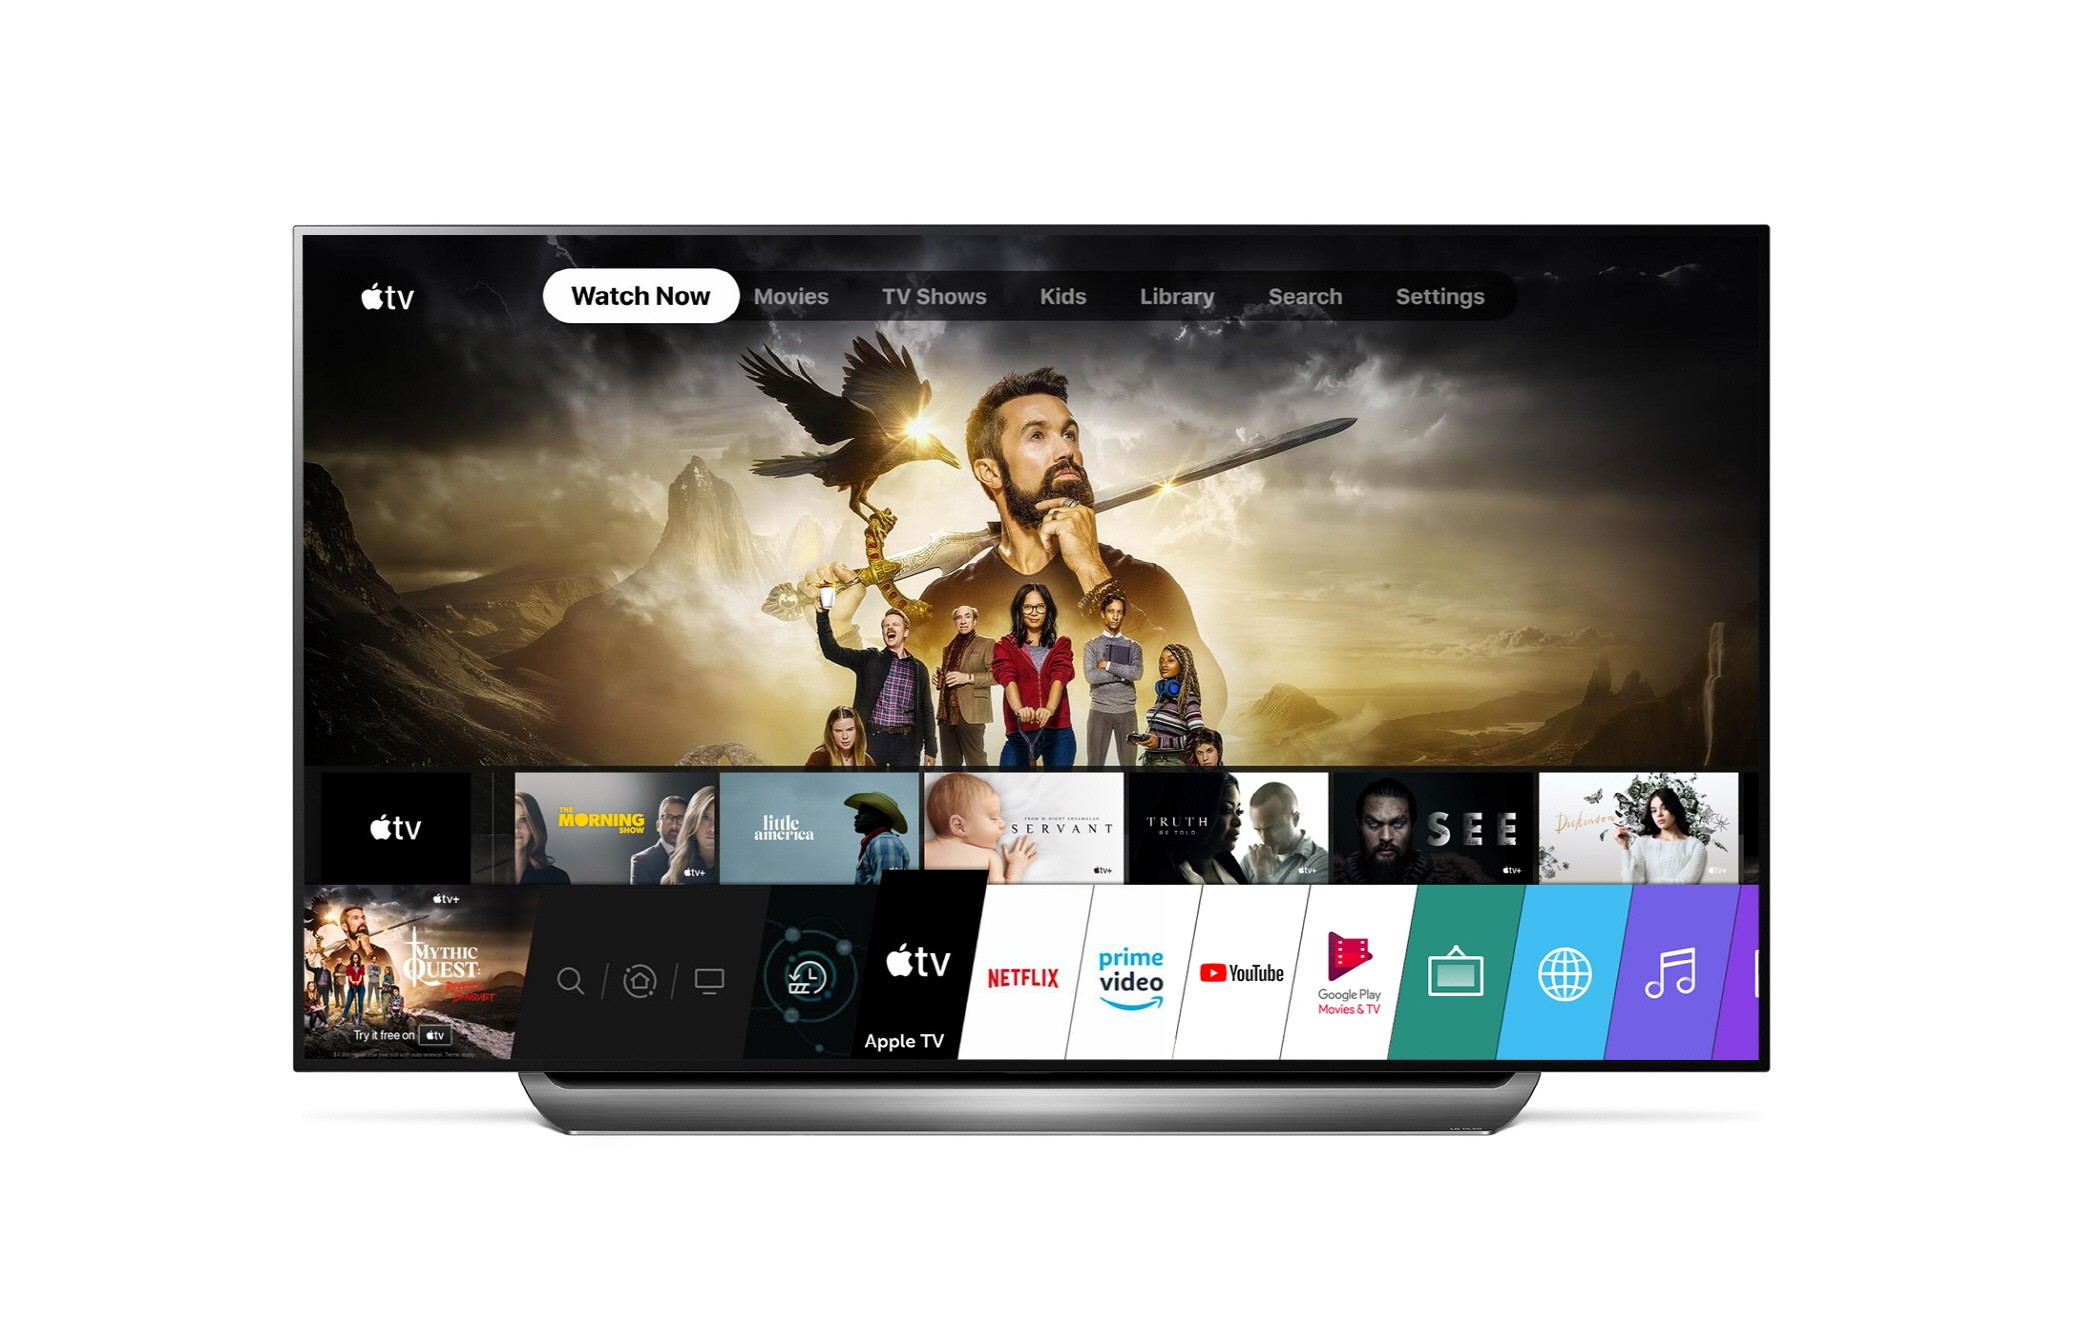 Front view of an LG TV displaying the Apple TV app home screen through its LG webOS operating system